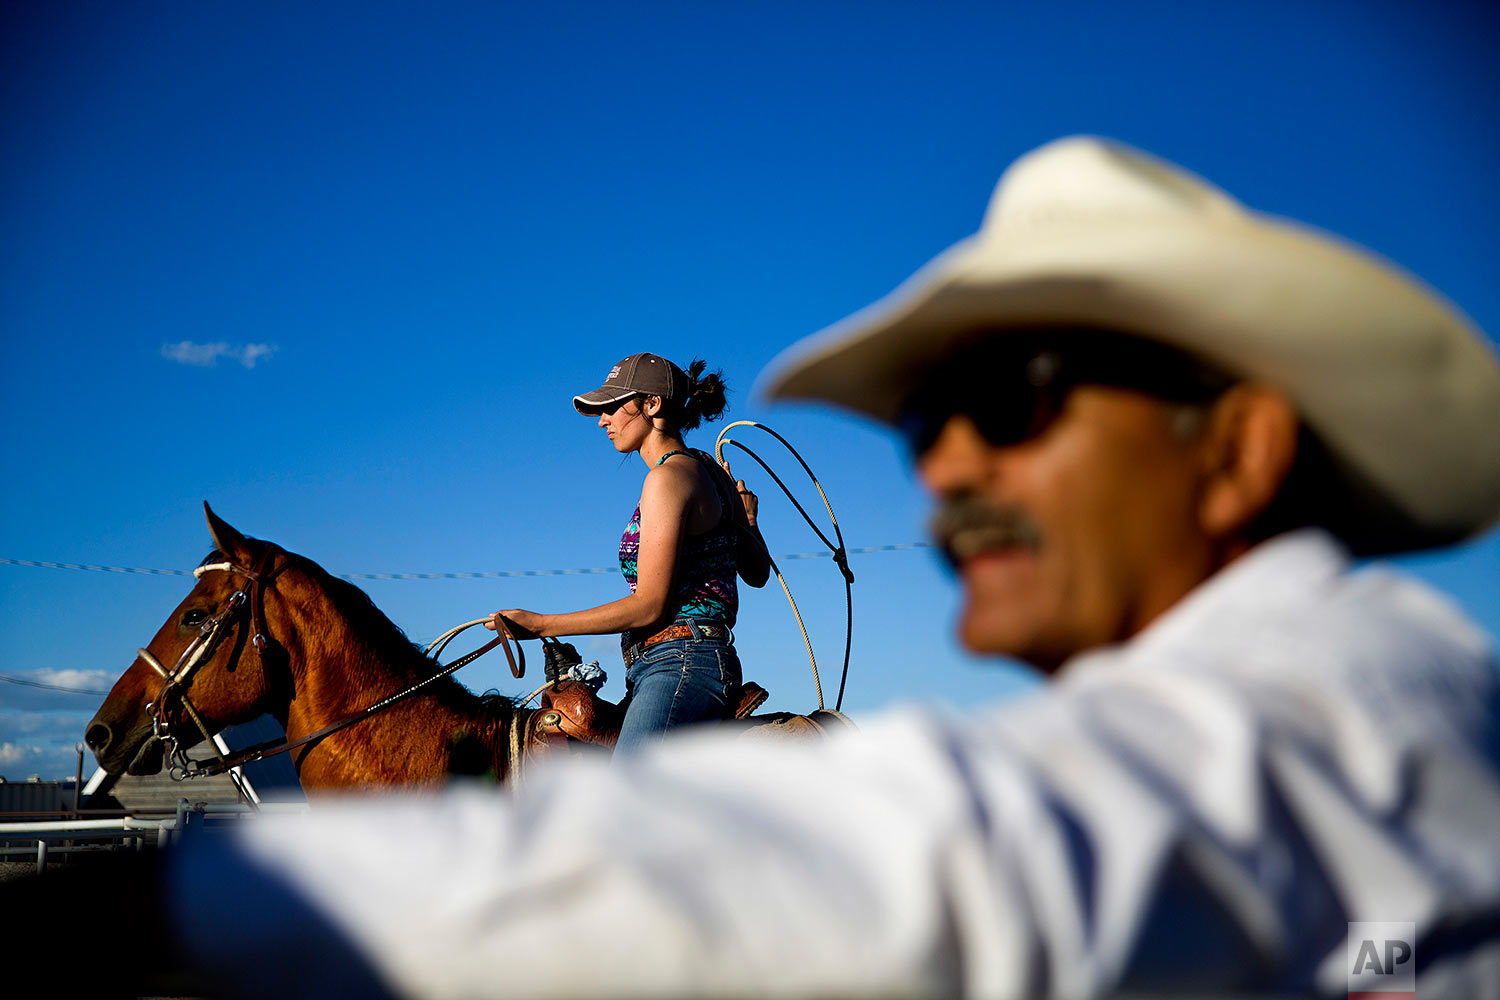 A female contestant waits to rope a calf during a practice run for a rodeo competition on the Blackfeet Indian Reservation in Browning, Mont., July 10, 2018. (AP Photo/David Goldman)